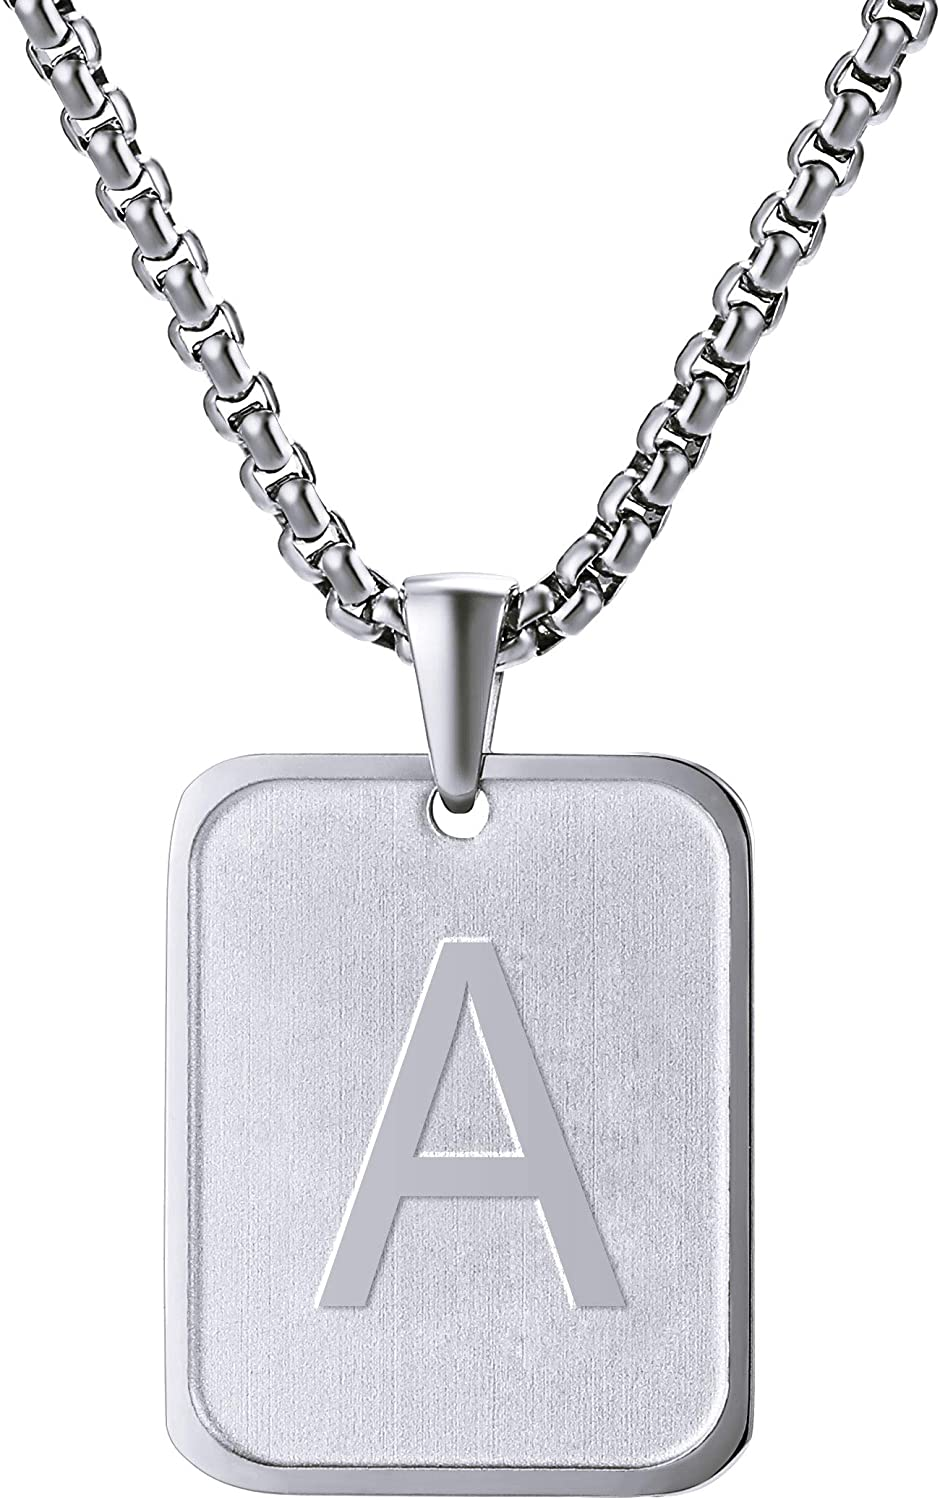 JF.JEWELRY Initial Letter Pendant with 26 Letters A-Z Monogram Necklace for Men Womens Charming Capital Letter Stainless Steel Pendant Great Gifts to Families and Friends,20-26 Inch,Free to Customize